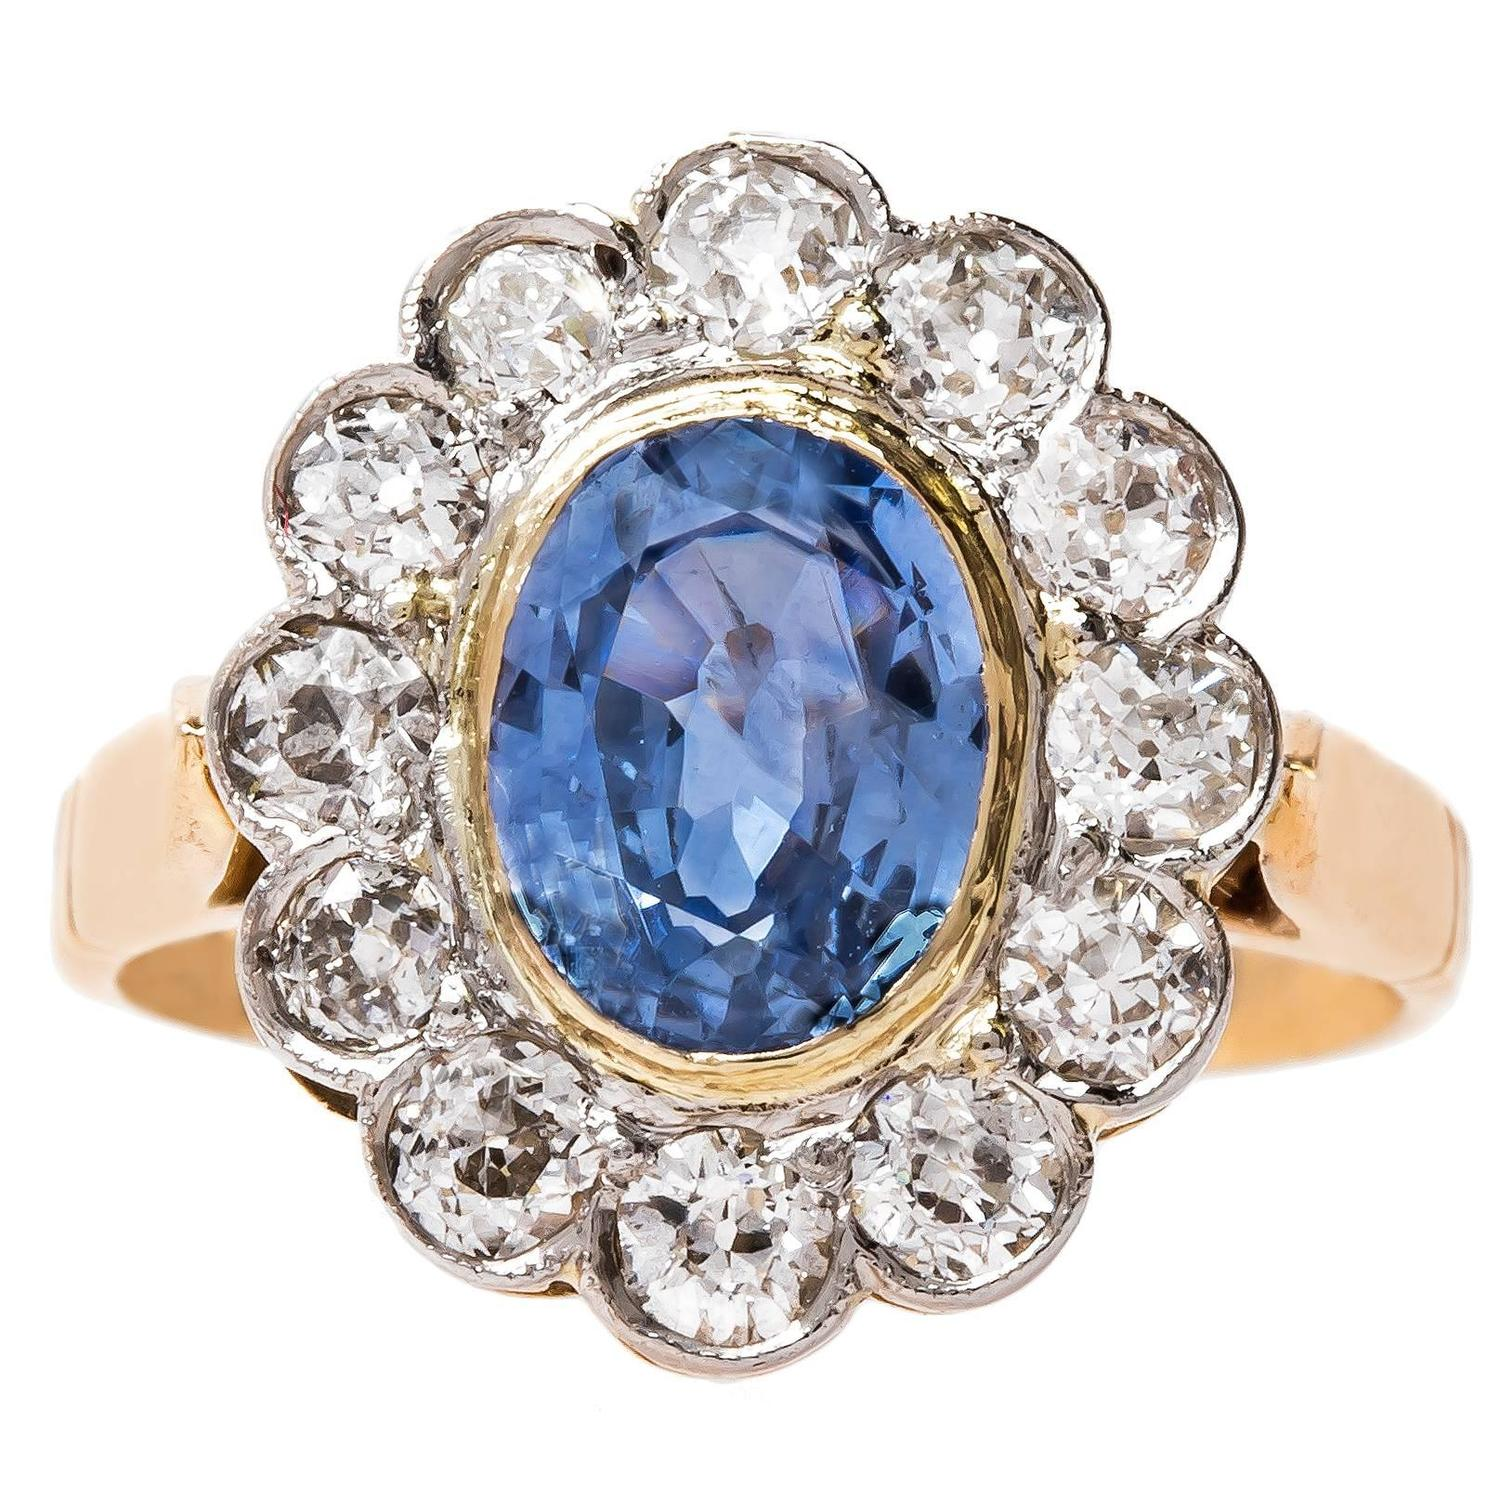 Allure Late Art Deco Engagement Ring with Light Blue Ceylon Sapphire at 1stdibs